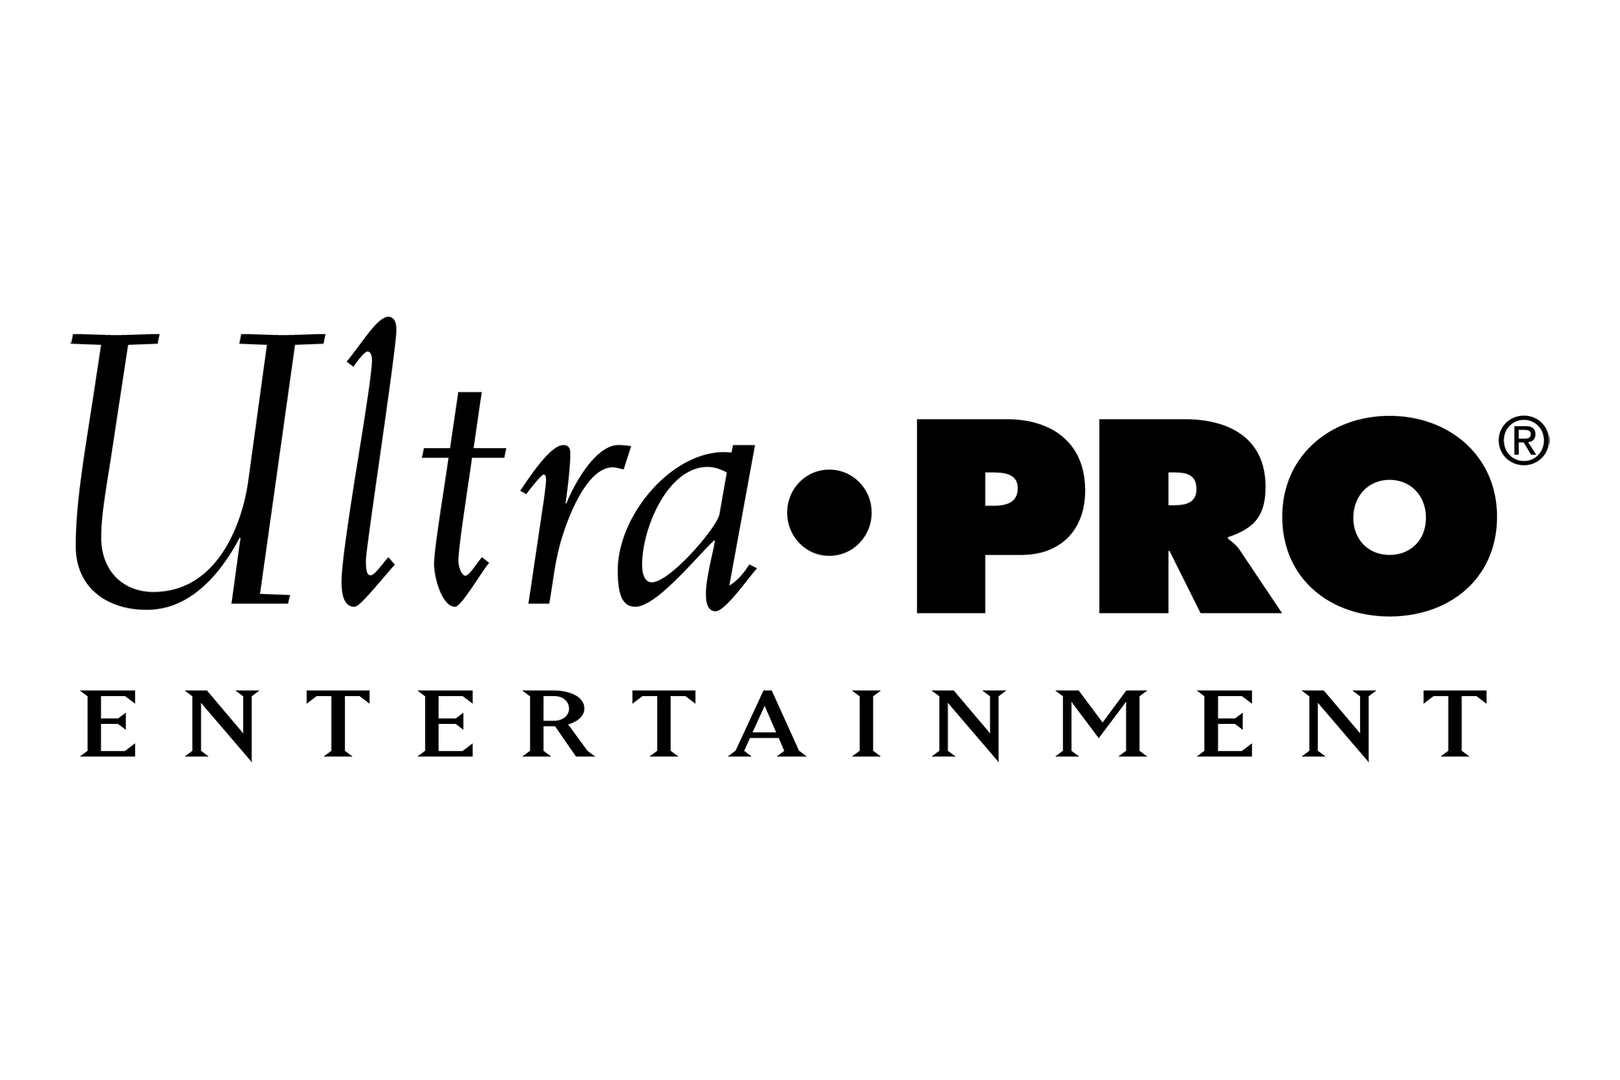 upe-logo-1920x1280.png